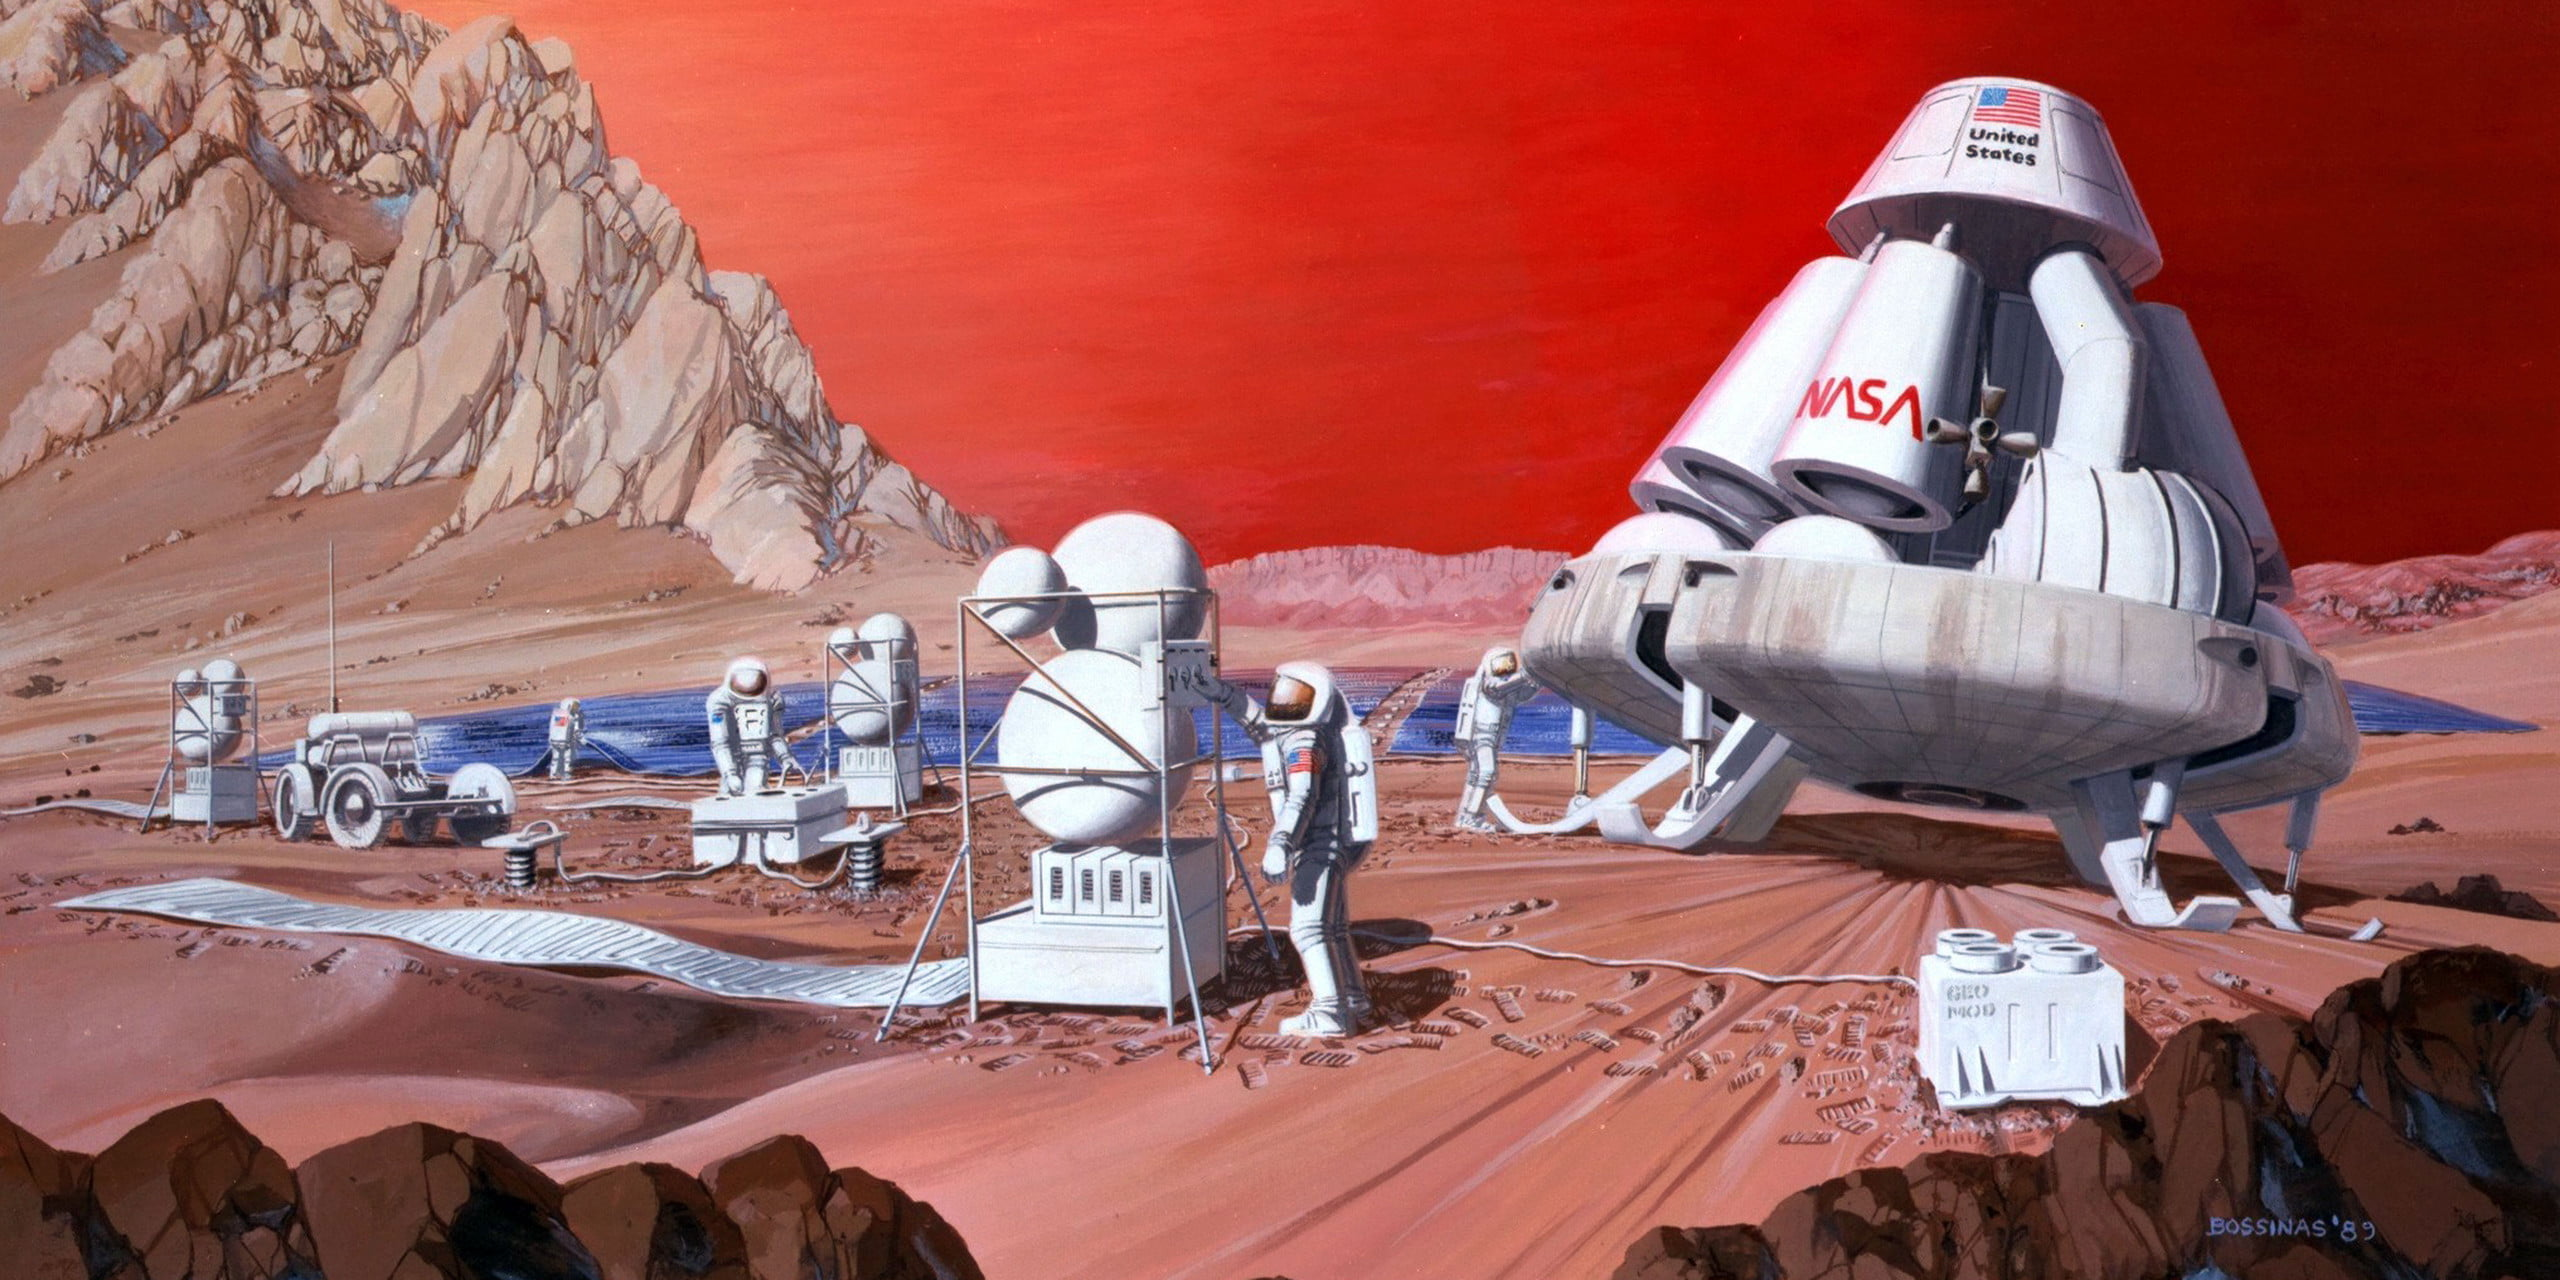 space-exploration-initiative-human-mission-to-mars-2